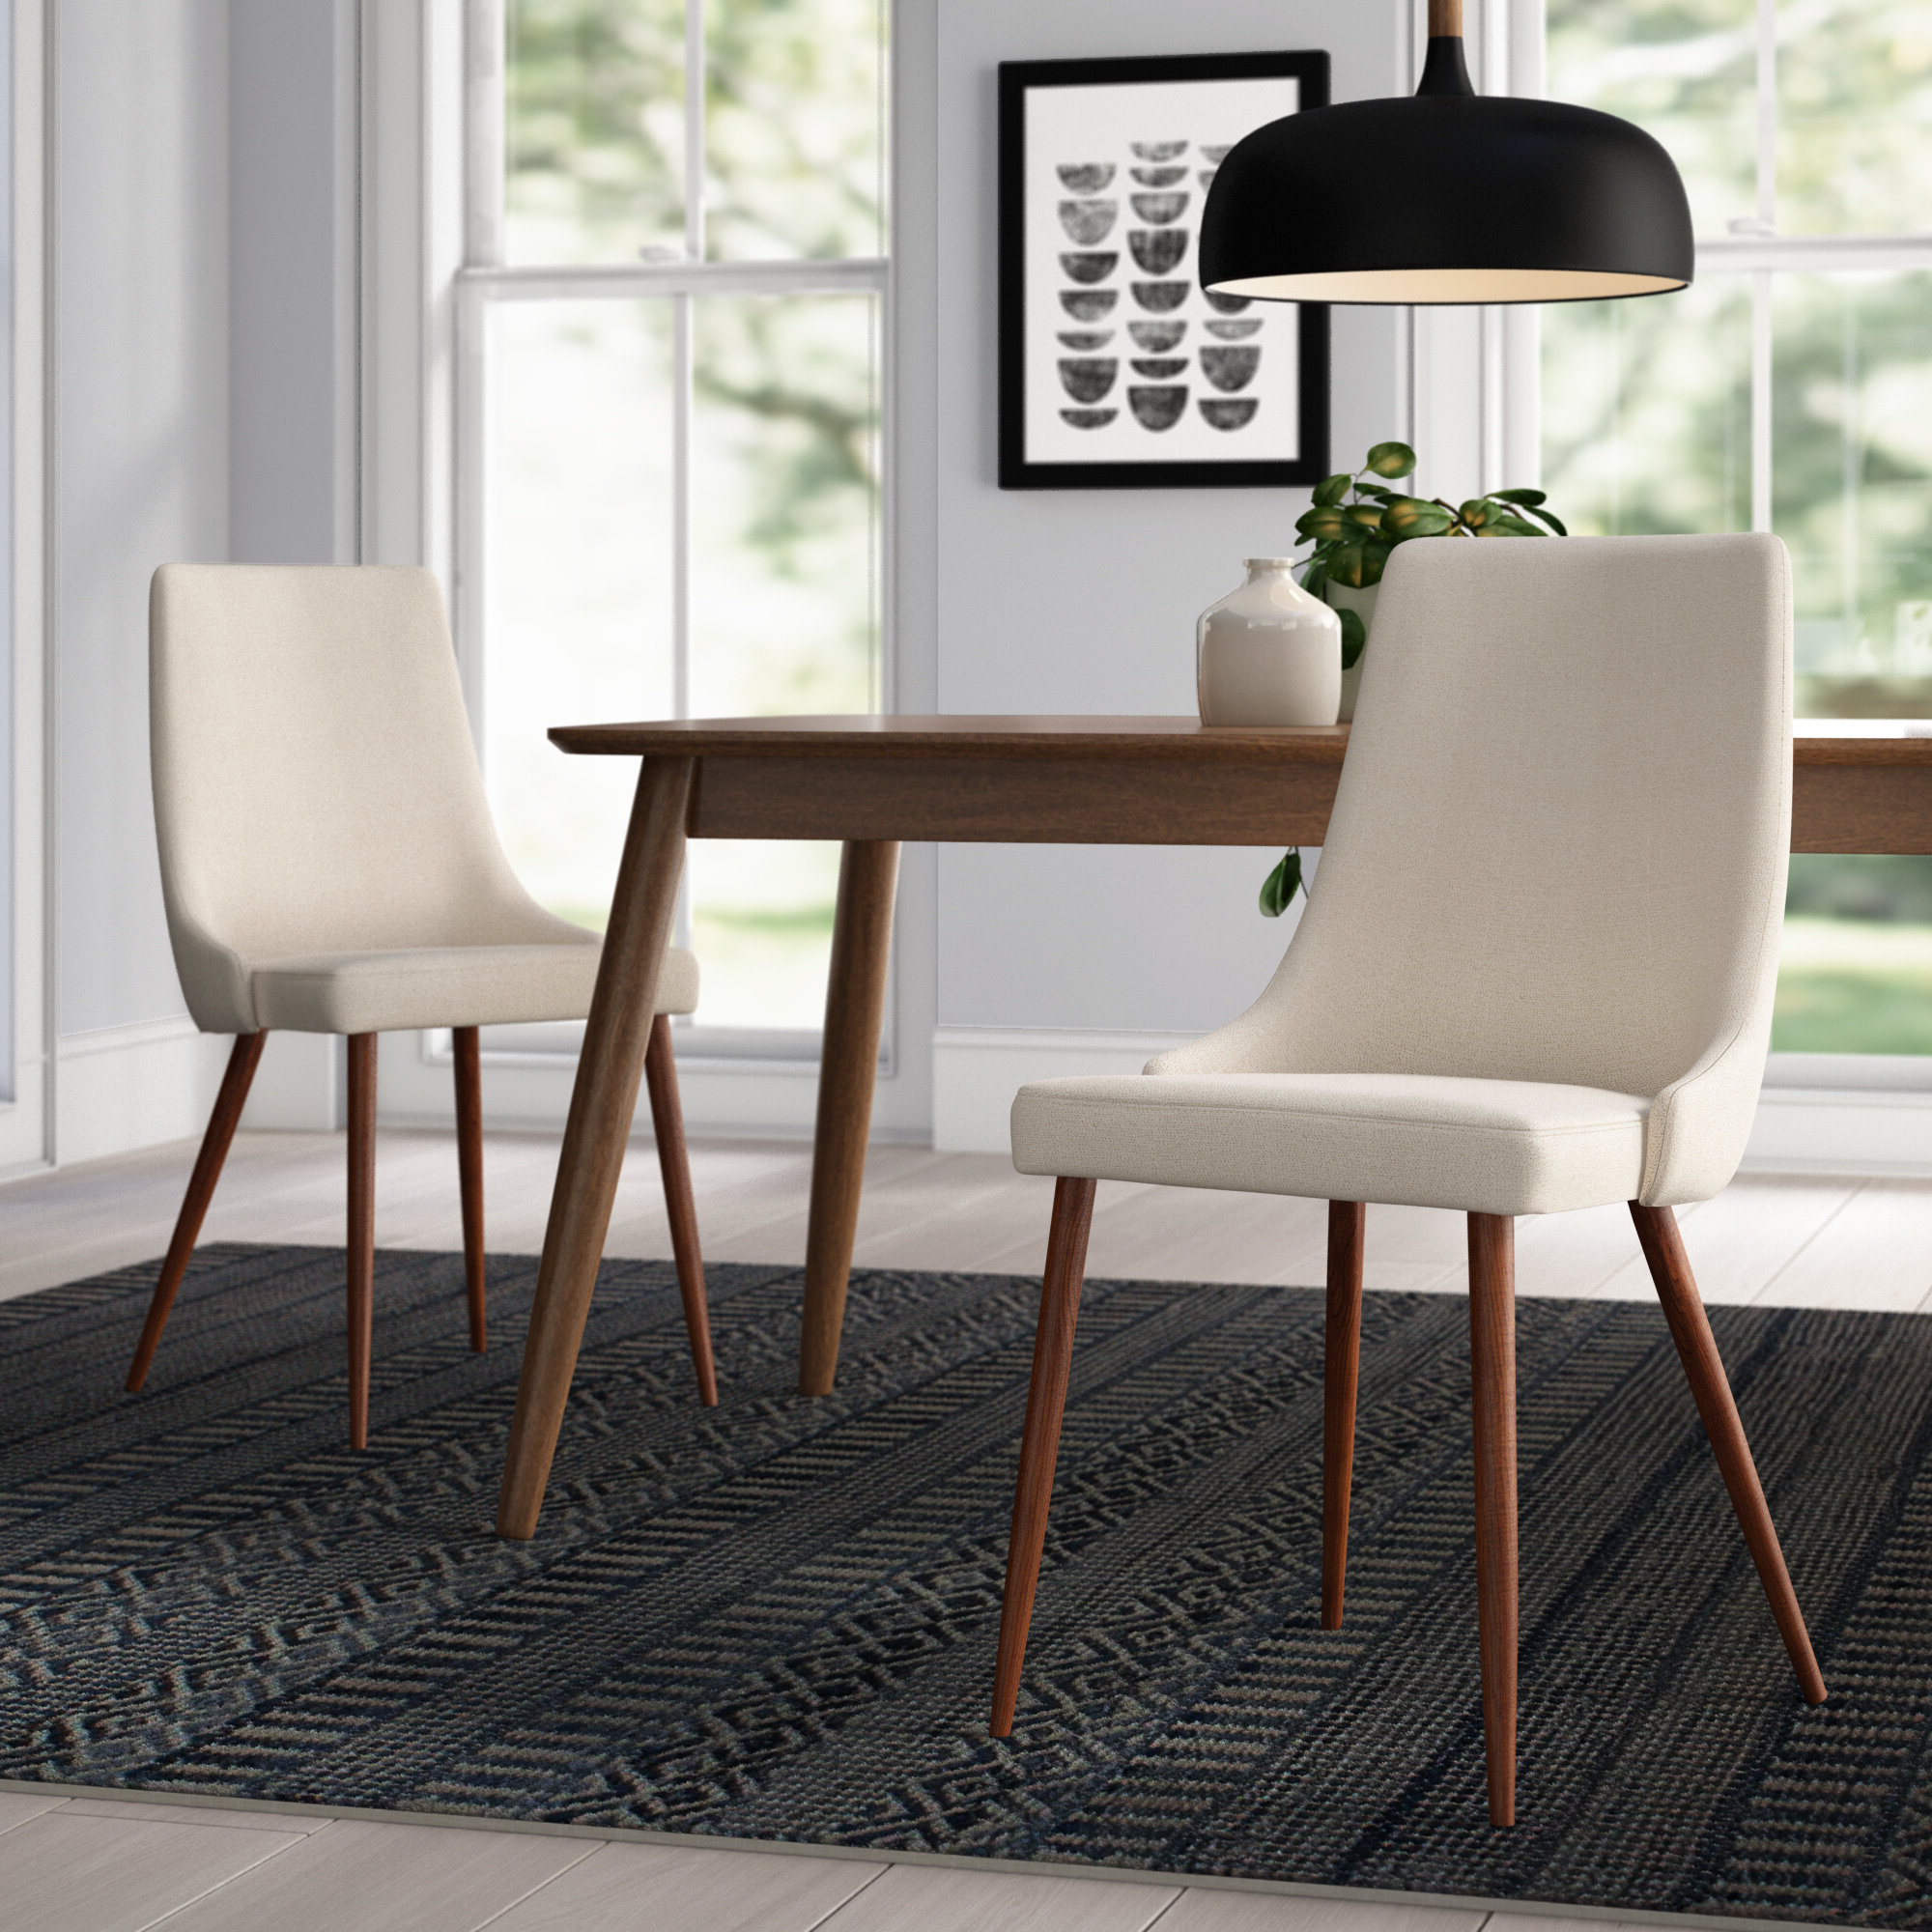 Wayfair Intended For Best And Newest Madison Avenue Tufted Cotton Upholstered Dining Chairs (set Of 2) (View 4 of 20)